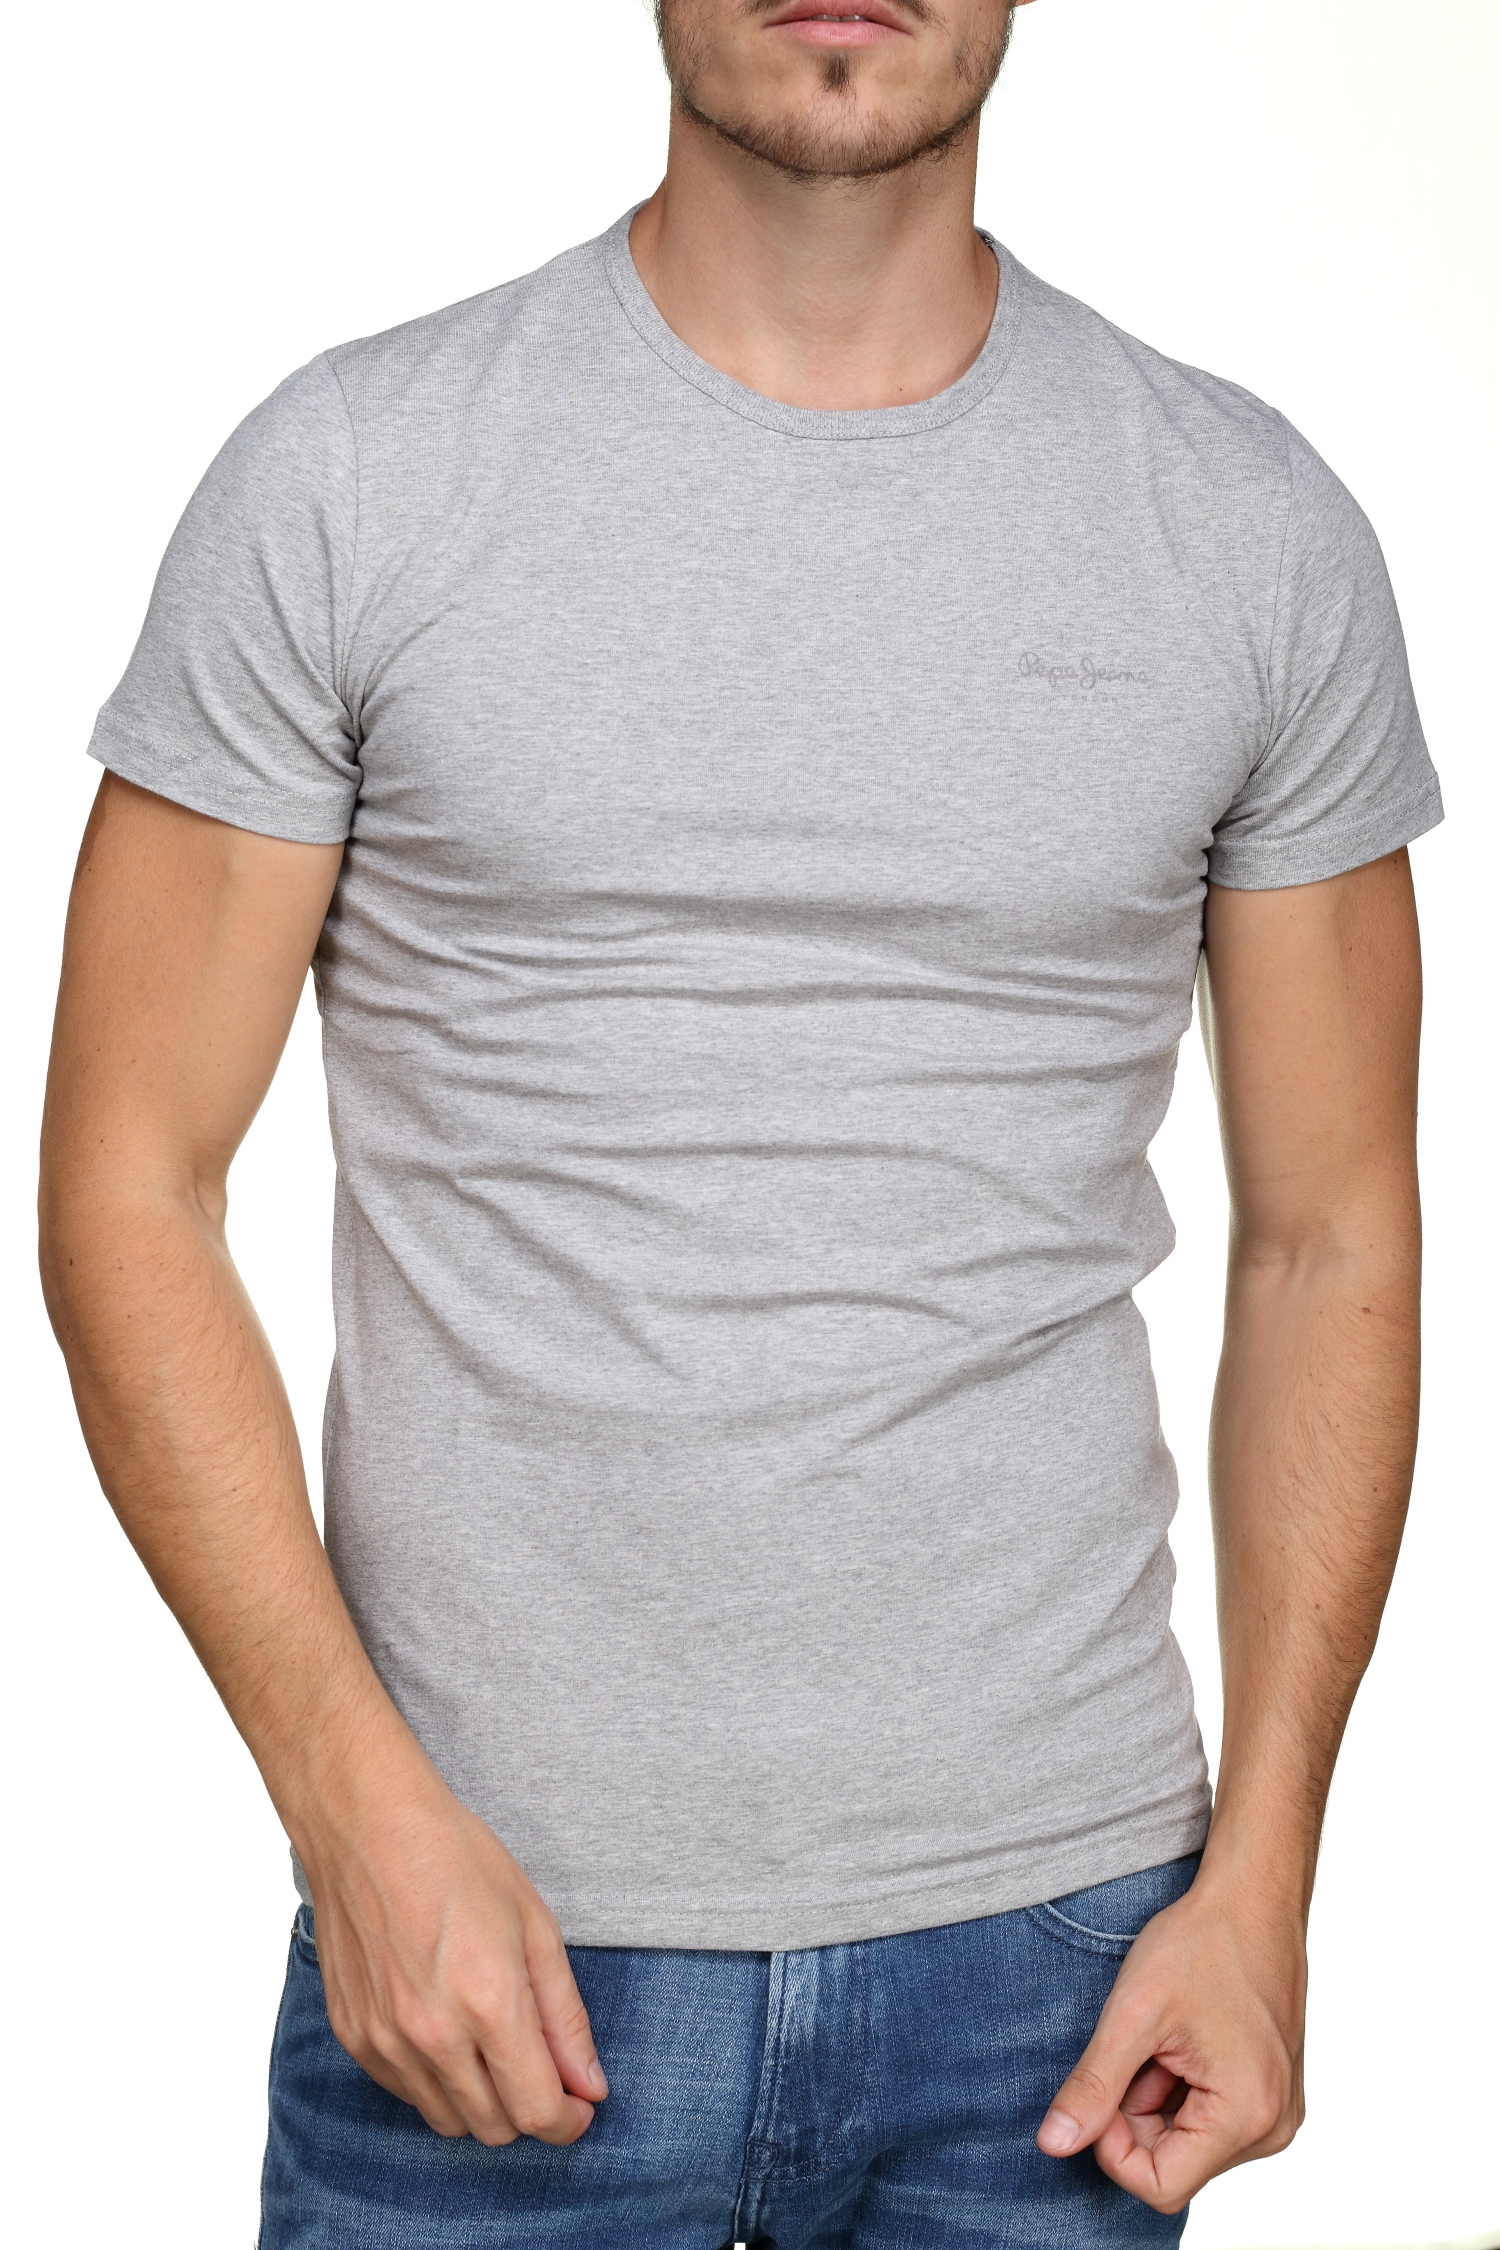 https://www.leadermode.com/156231/pepe-jeans-pm503835-original-basic-933-grey-marl.jpg